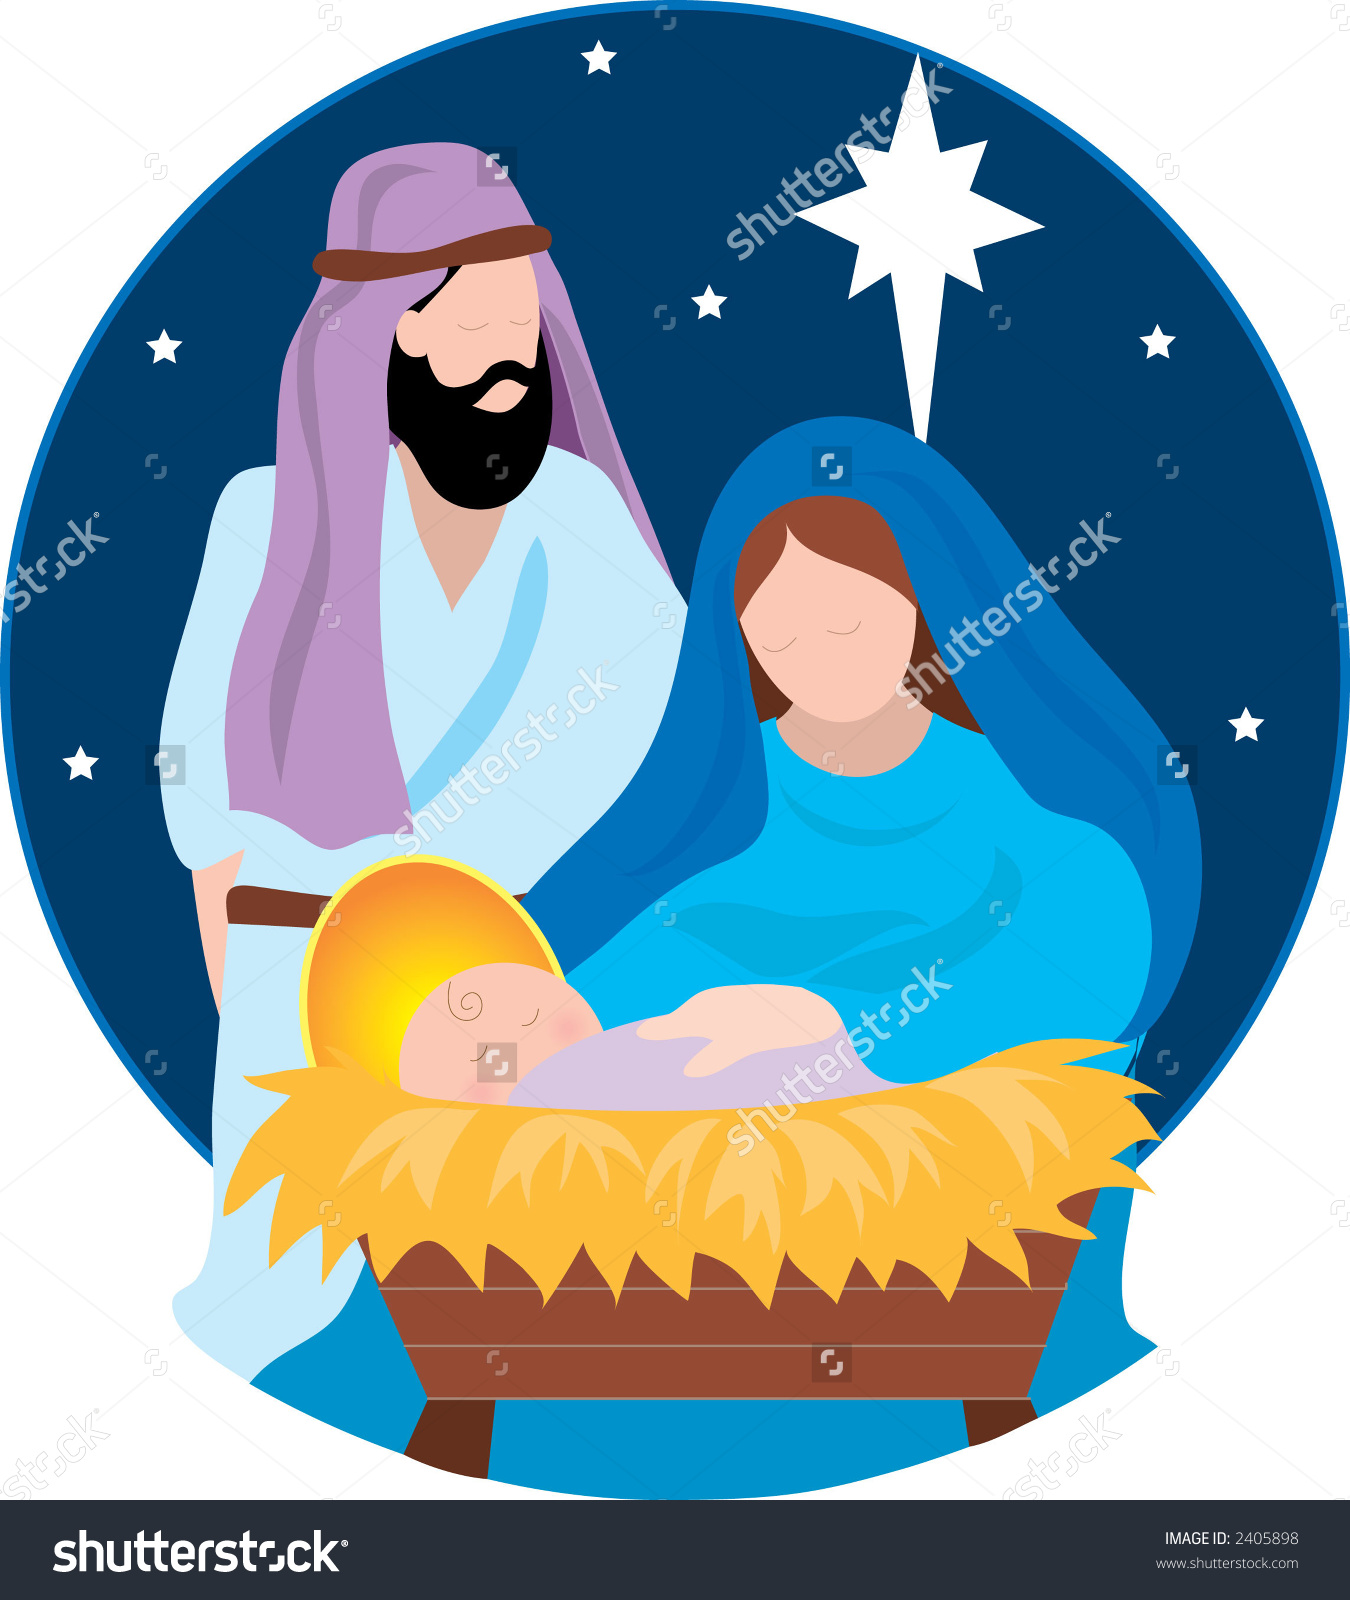 Jesus mary clipart svg black and white download Jesus mary joseph and star clipart - ClipartFest svg black and white download